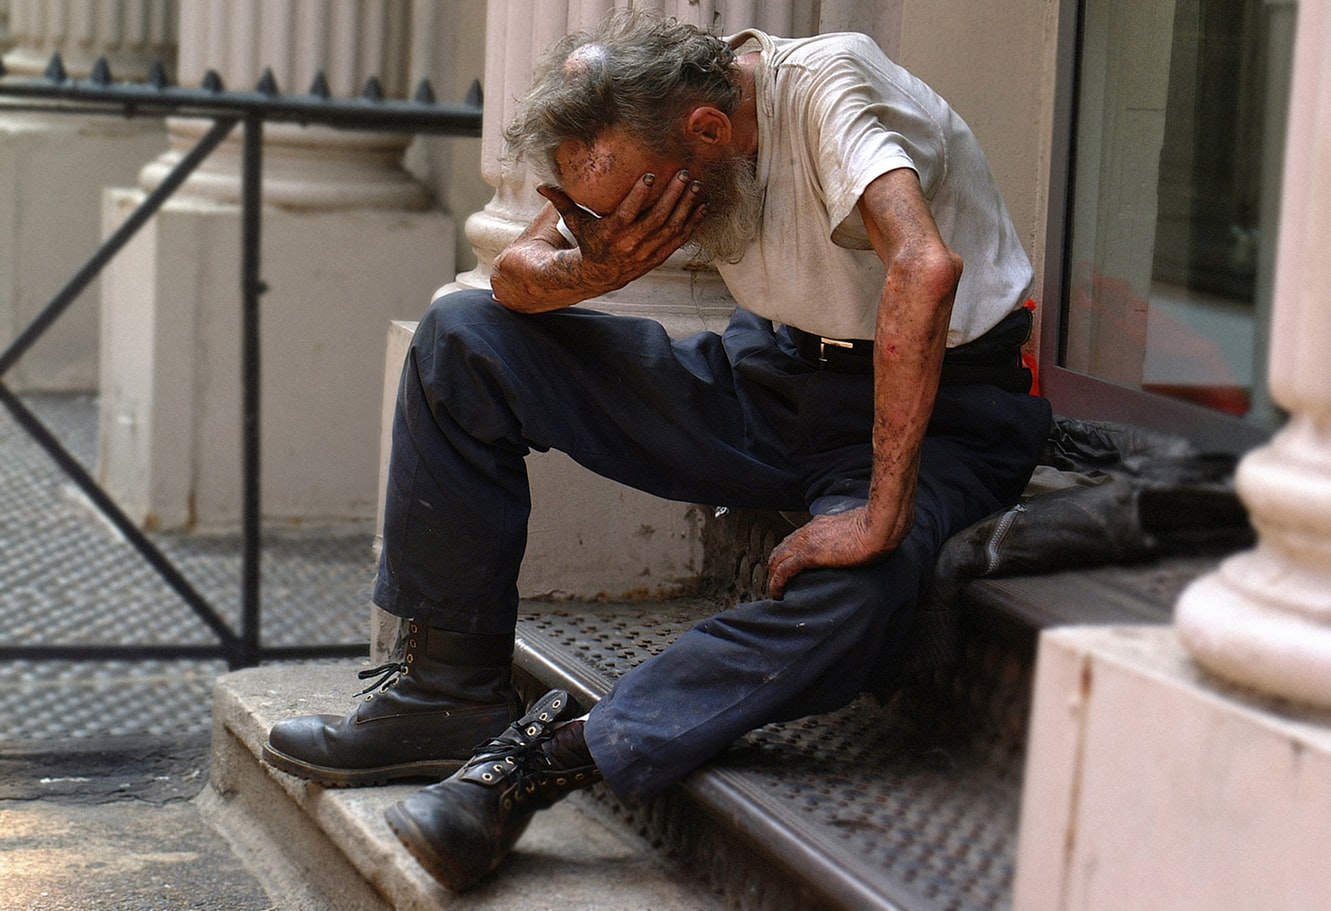 An older man sitting on the stairs and holding his head in his hand because he is suffering from depression